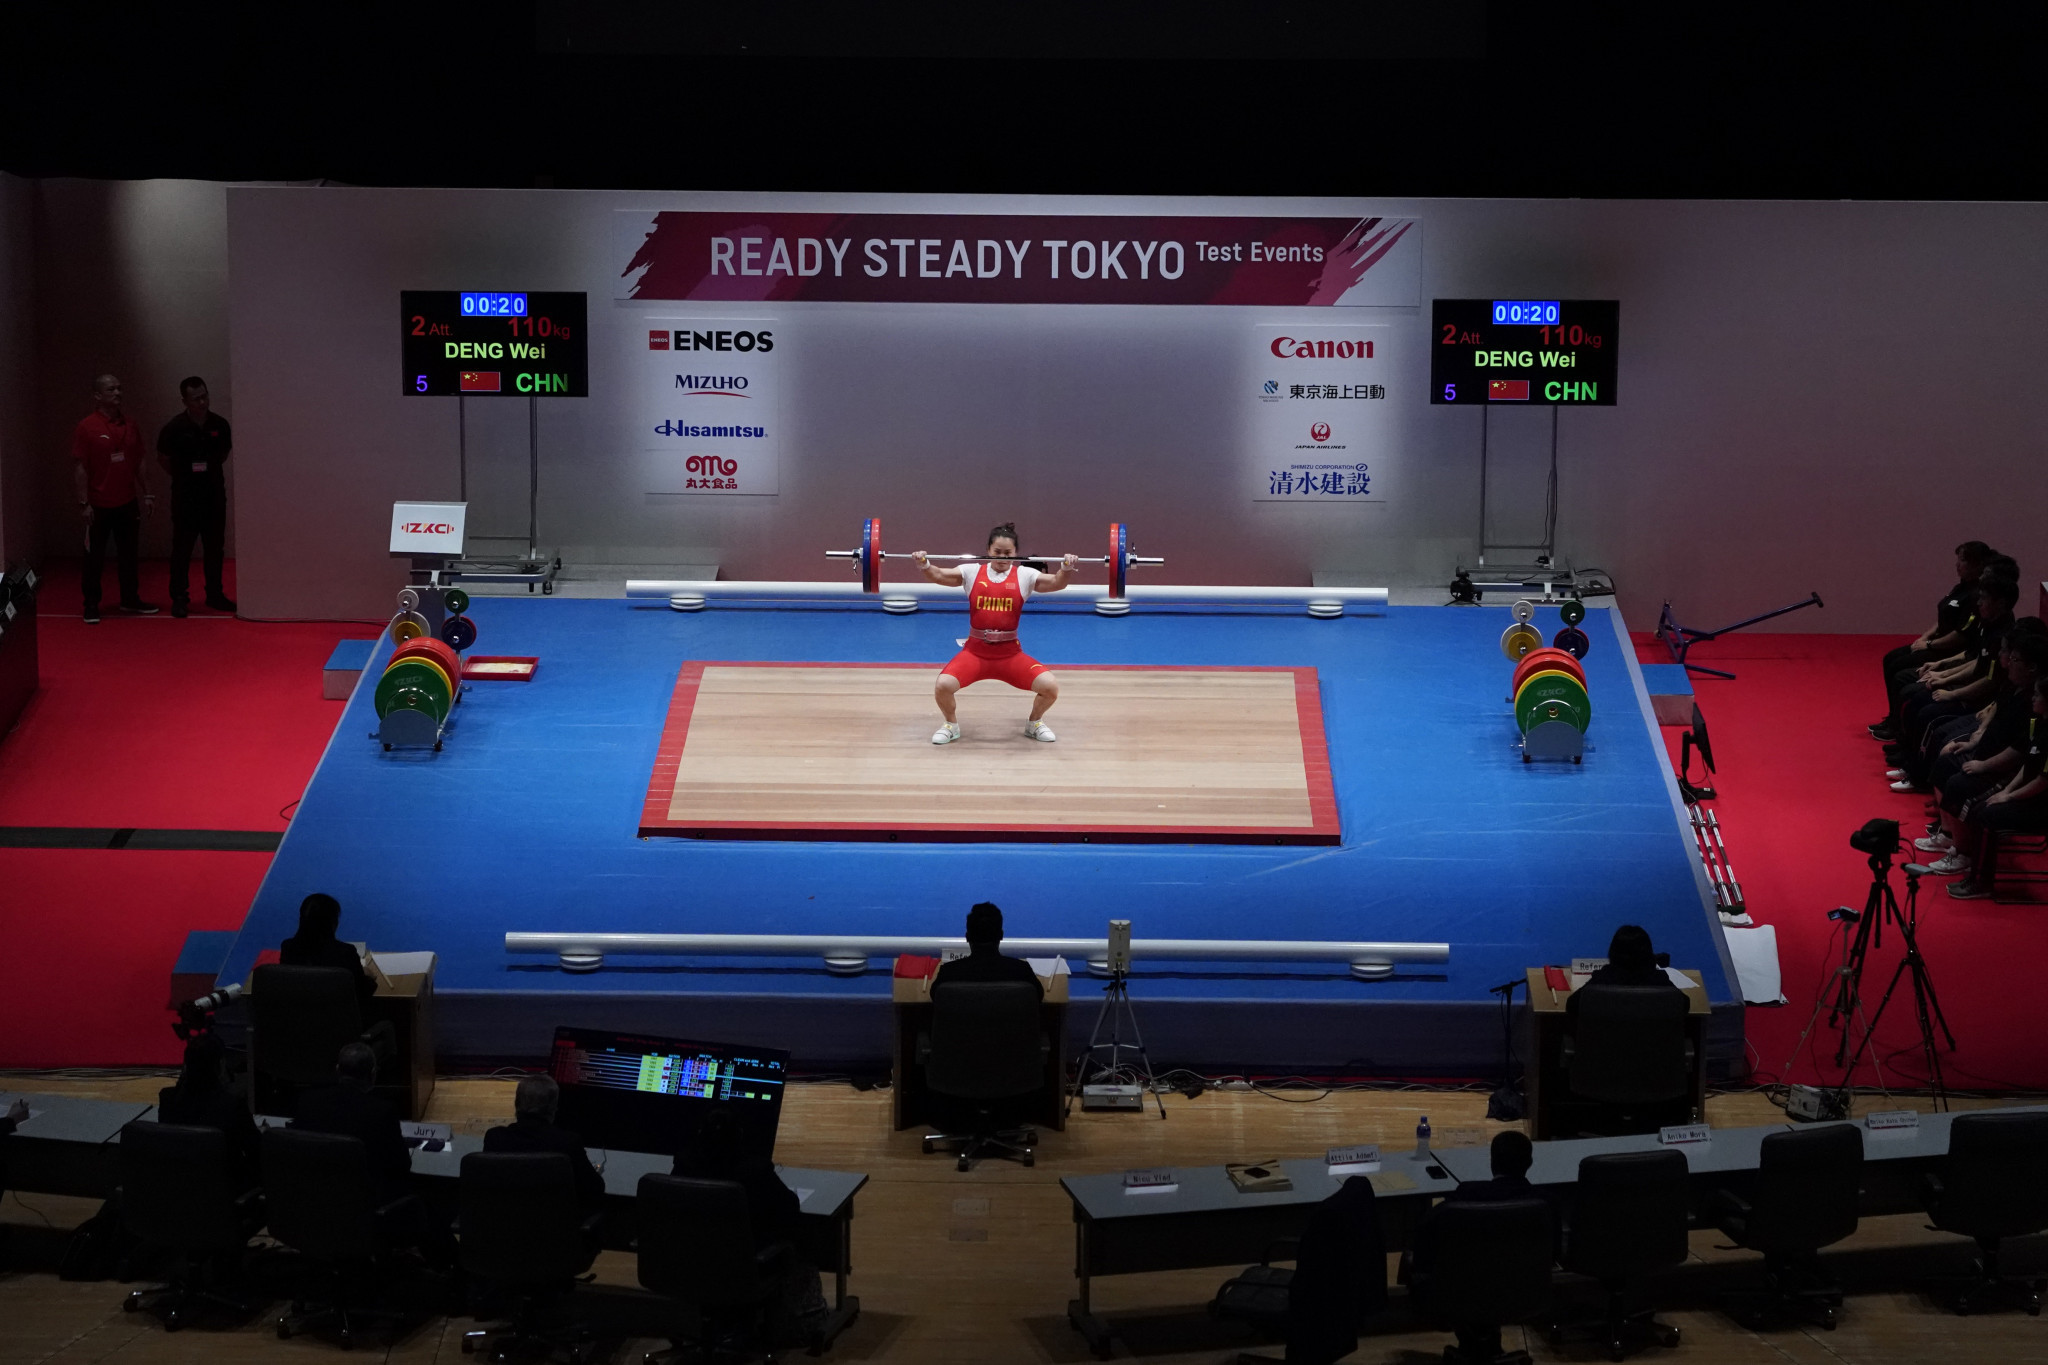 Romania is banned entirely from the Tokyo 2020 weightlifting competition - as are Thailand, Egypt and Malaysia ©Getty Images